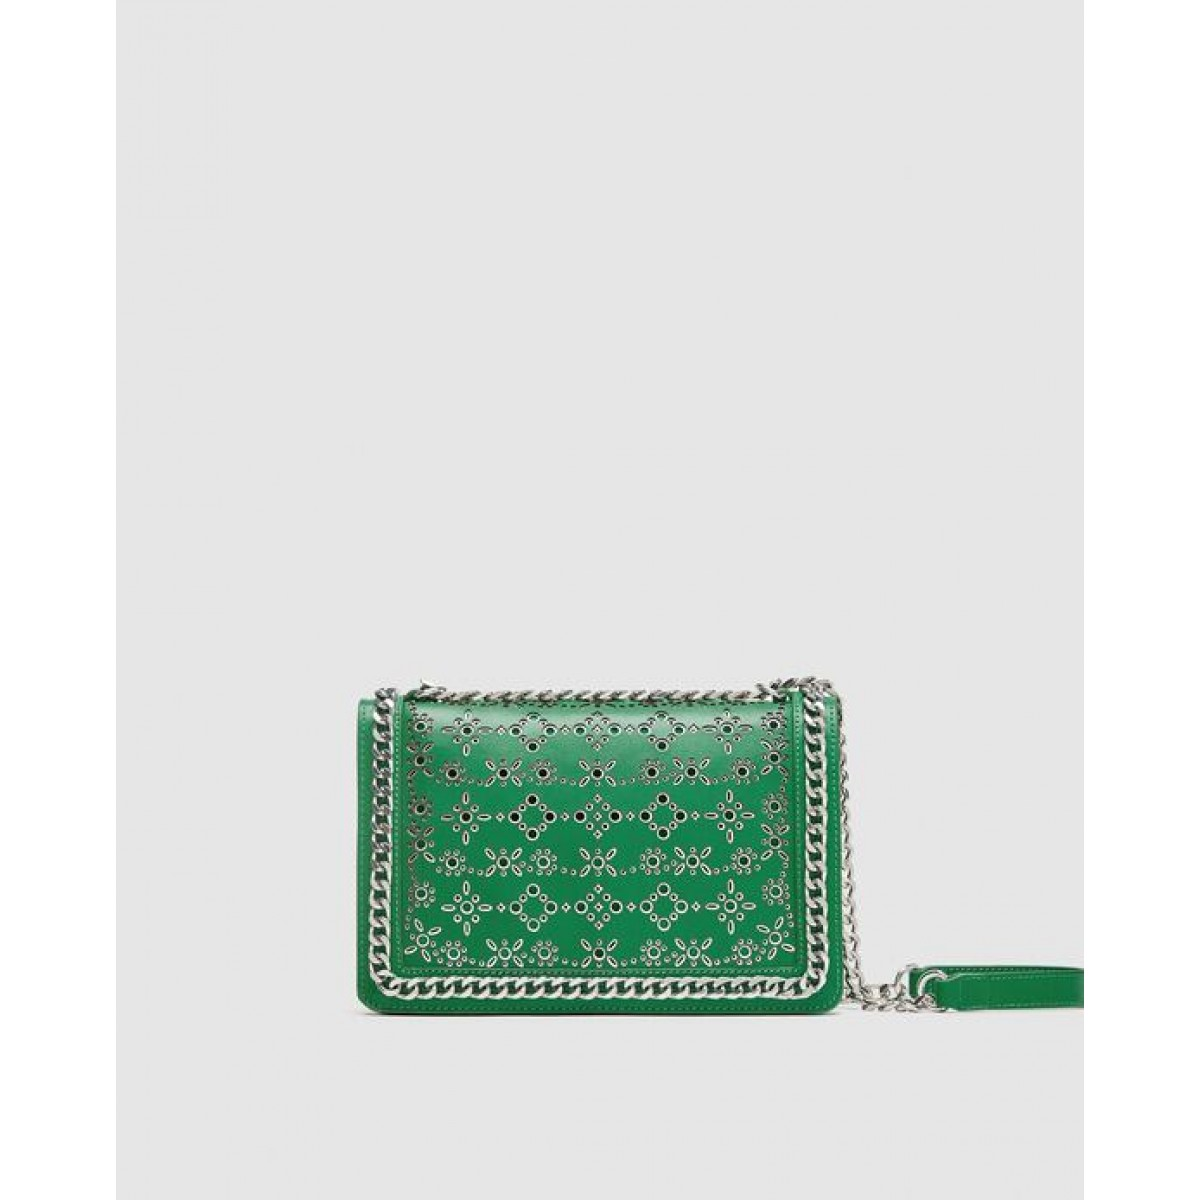 Zara Die-Cut Leather Crossbody Bag With Chain Trims